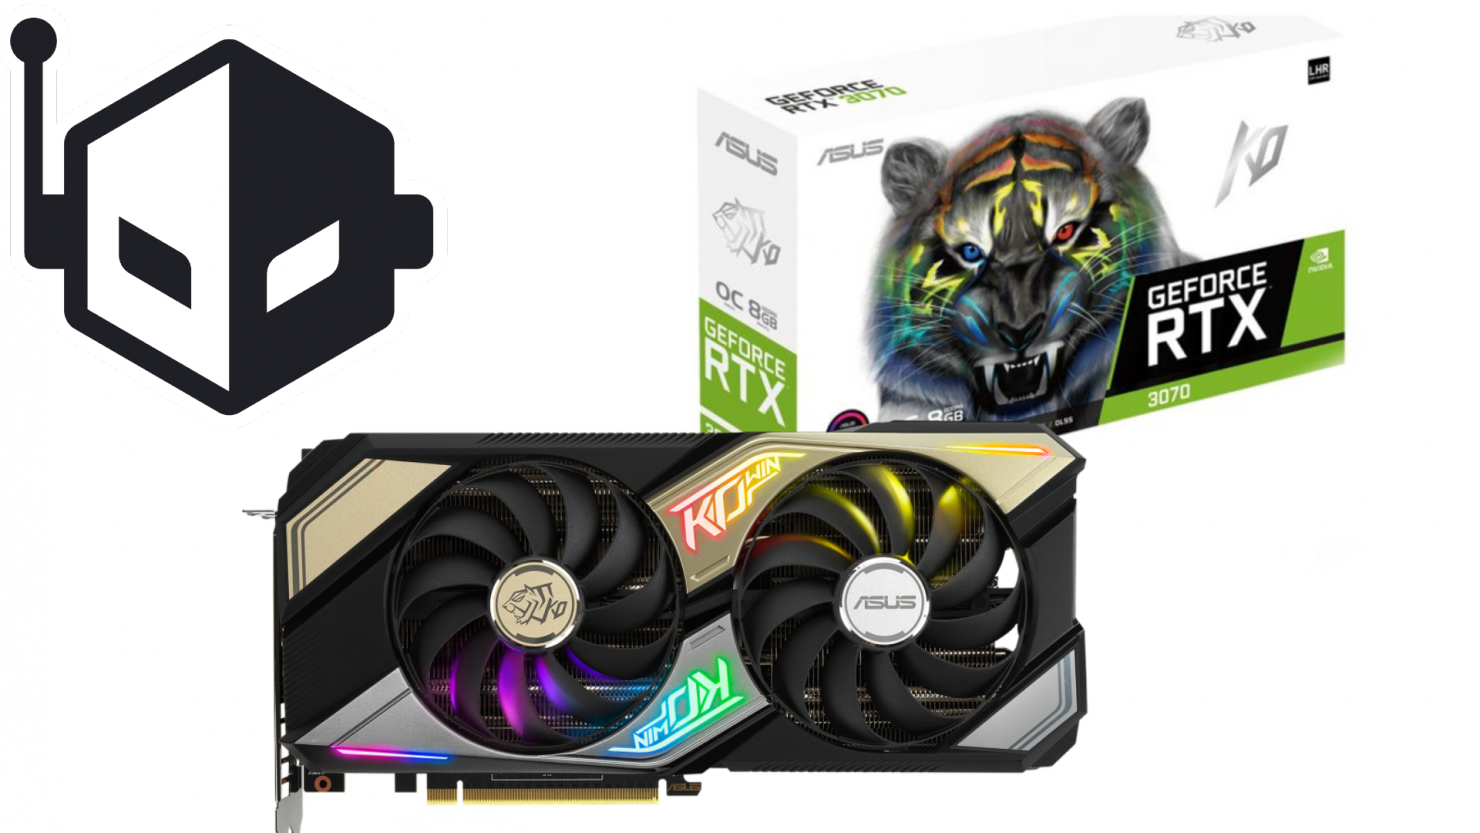 asus-launches-its-rtx-30-series-gpus-with-lite-hash-rate